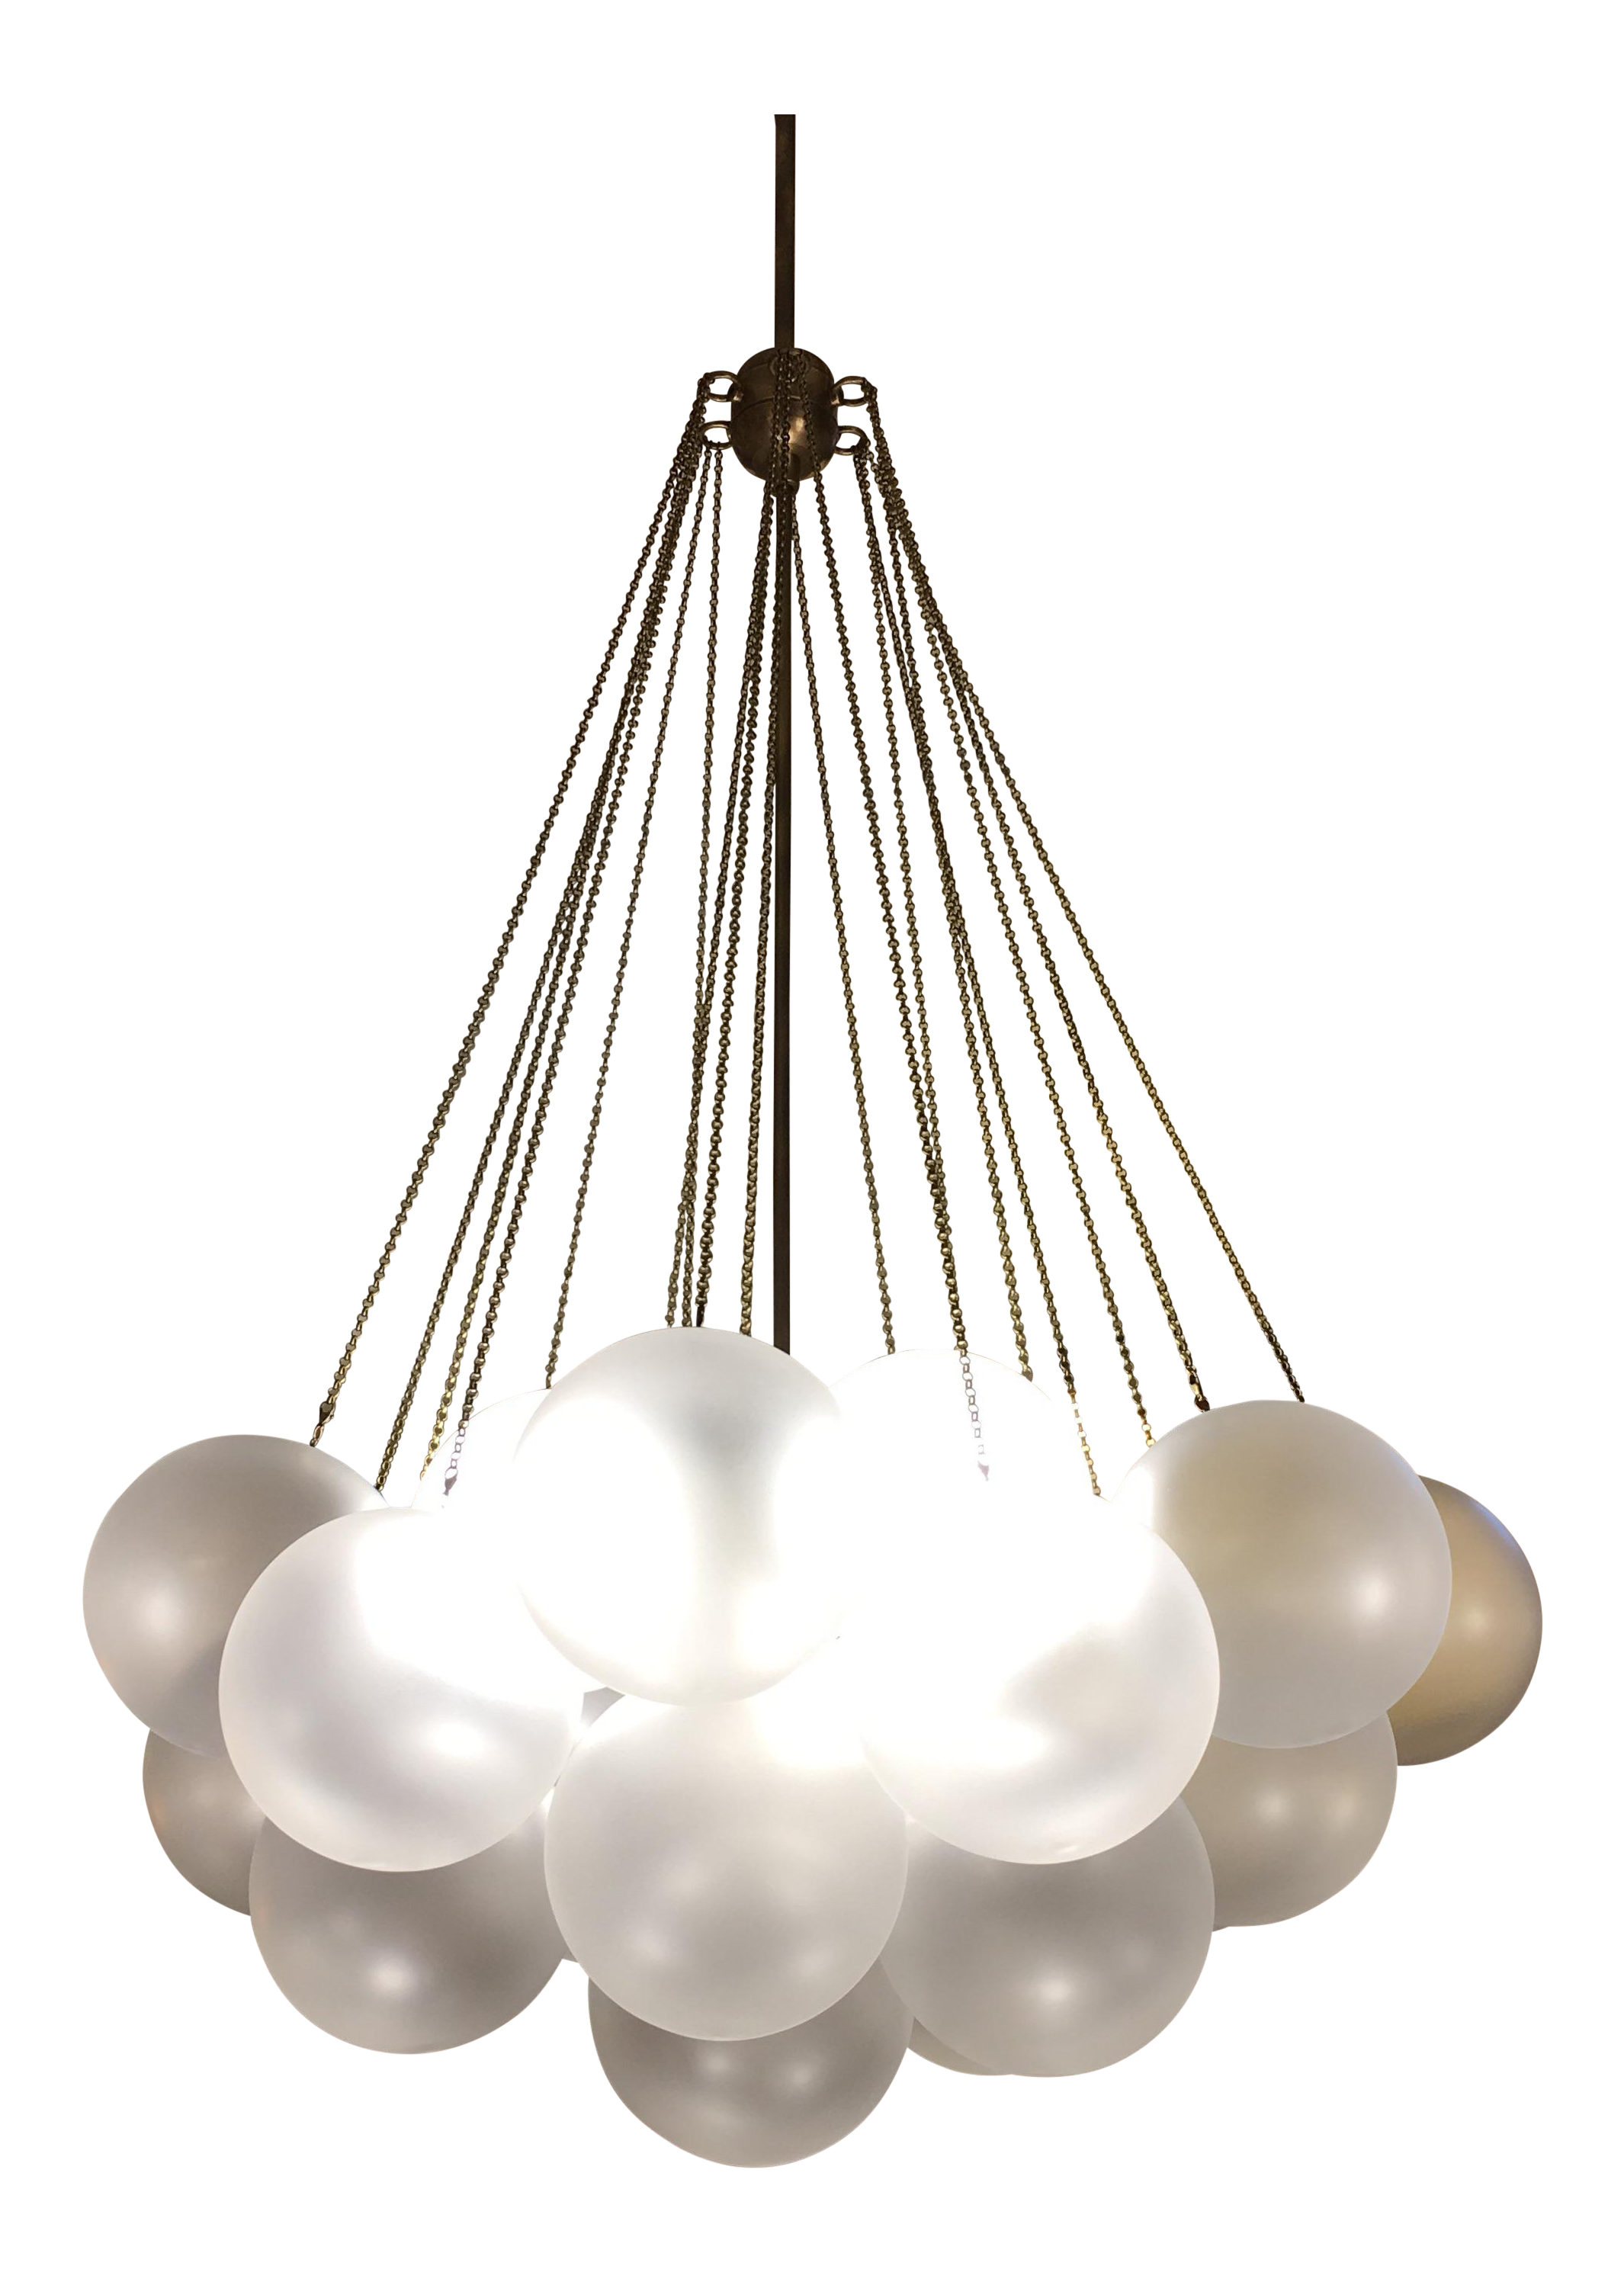 metallic pendant lighting design discoveries. Apparatus Lighting. Lighting Metallic Pendant Design Discoveries